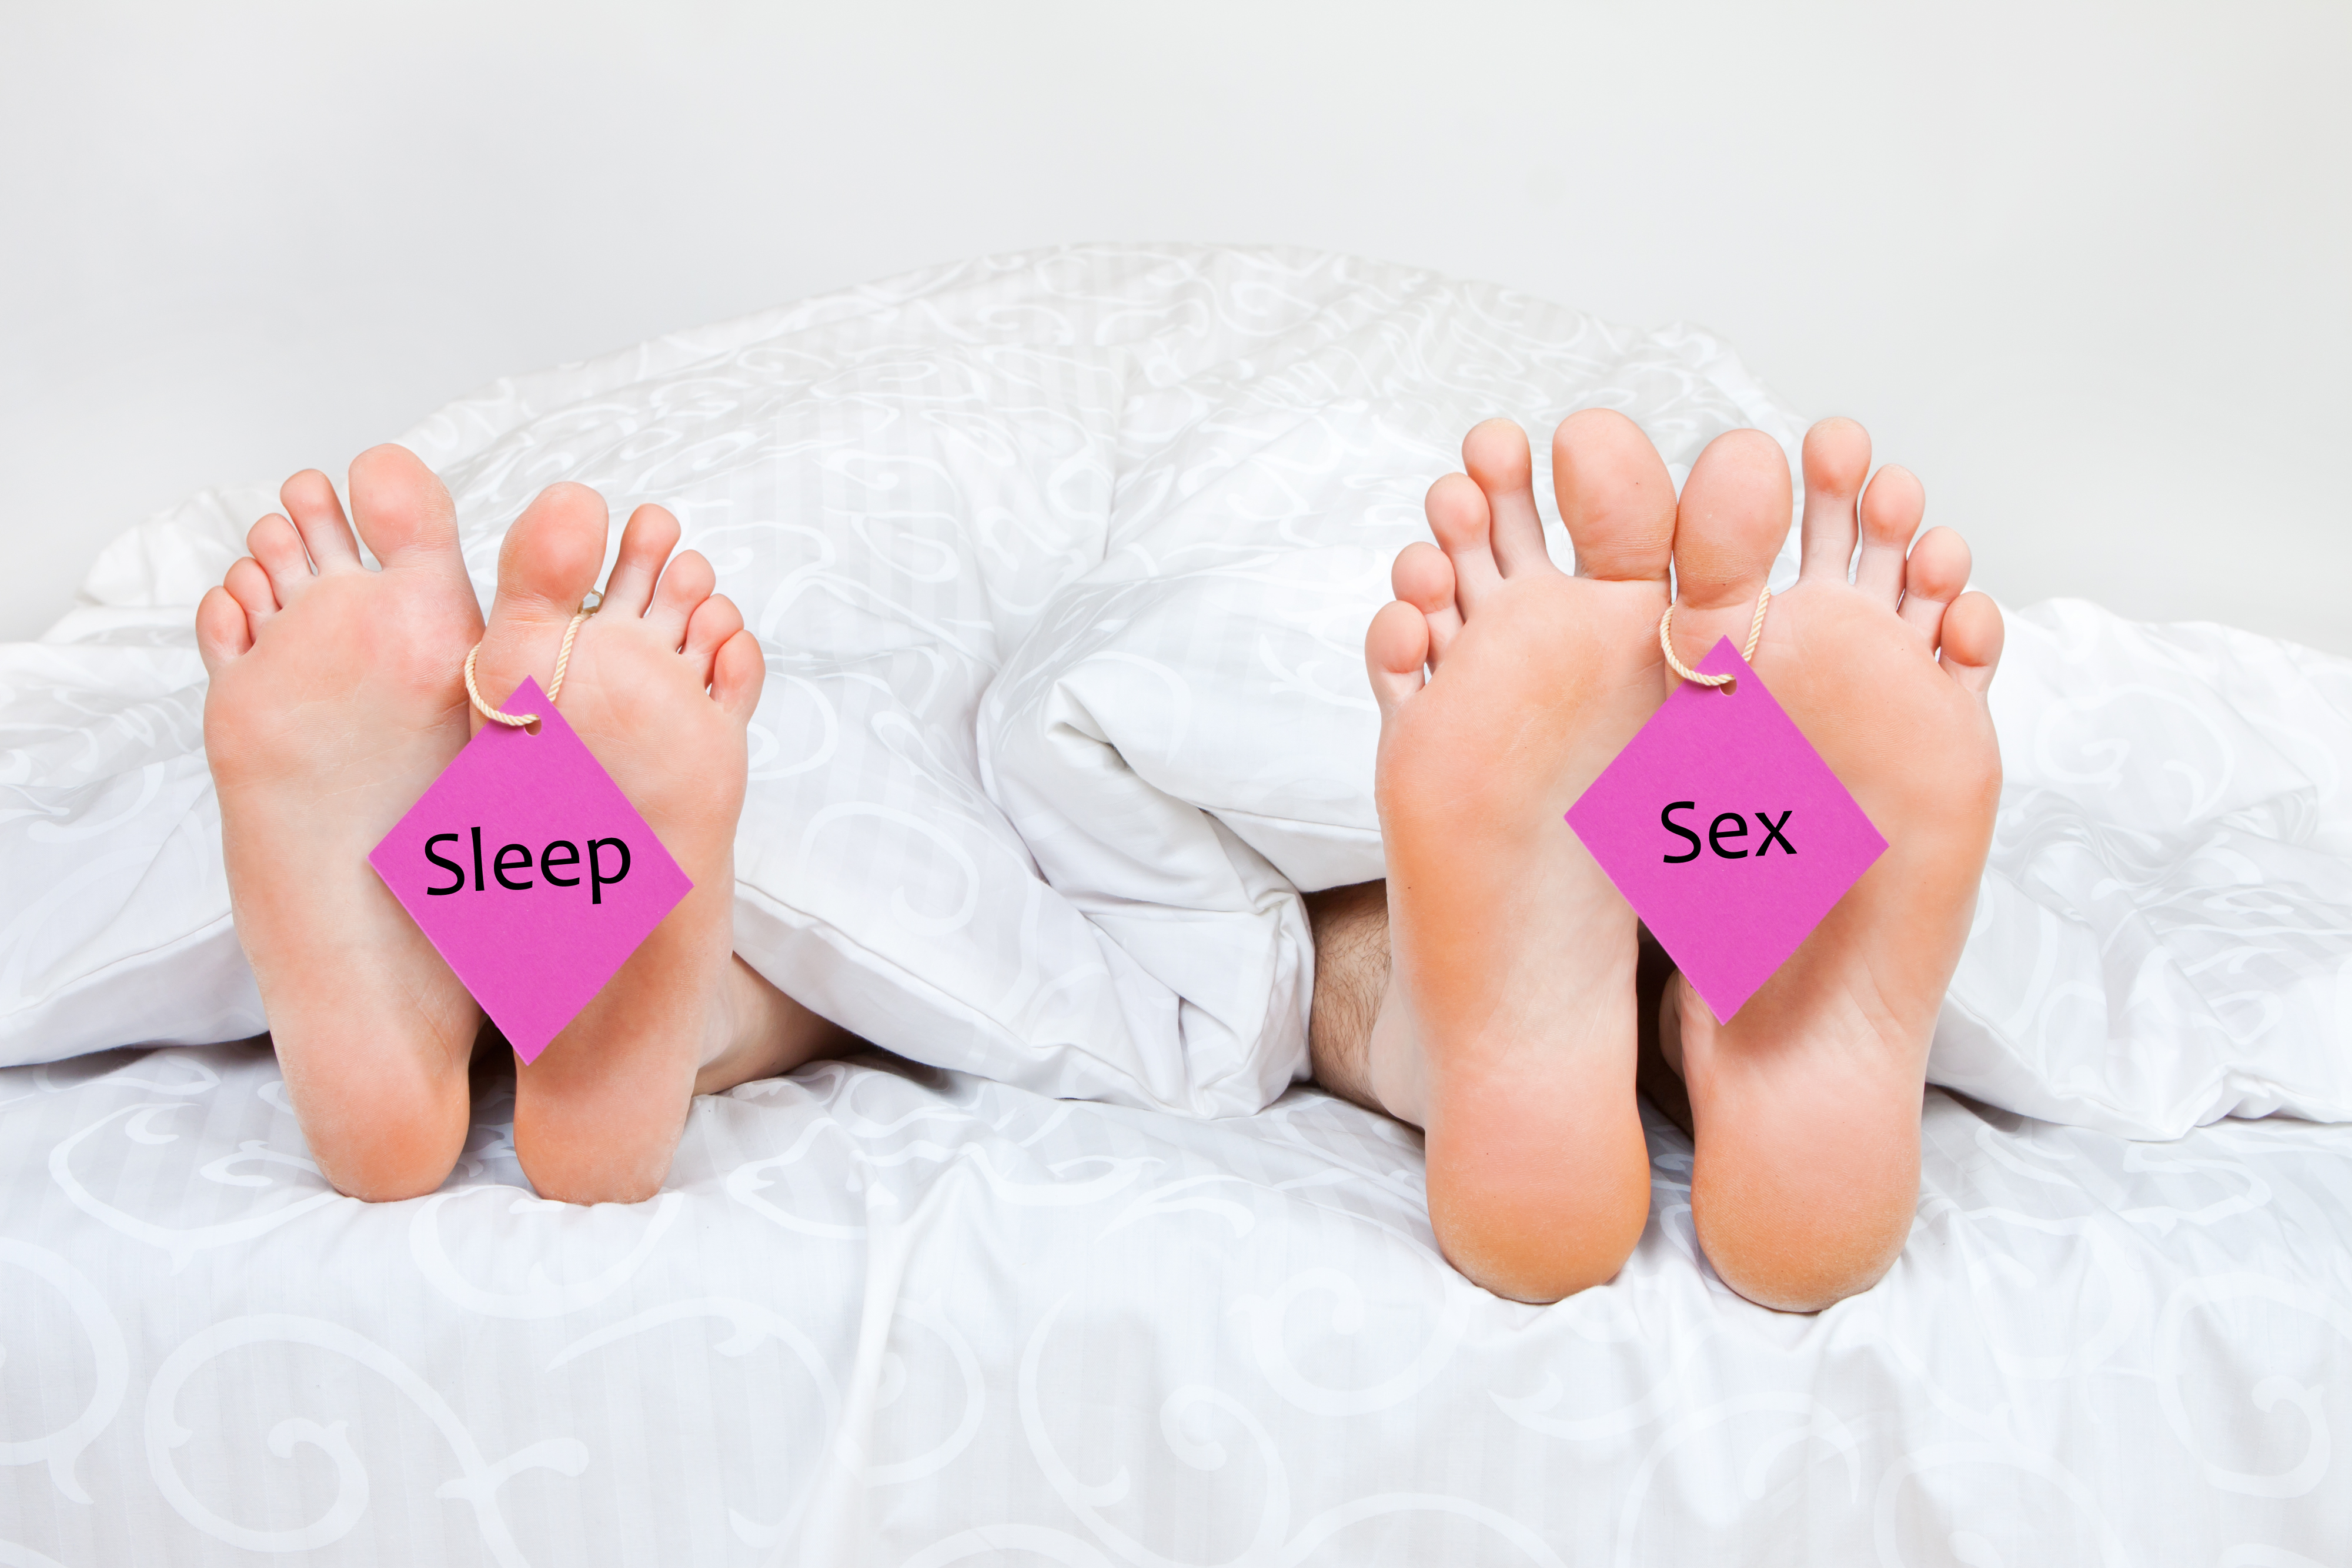 Sleep after sex is important to your healthy living